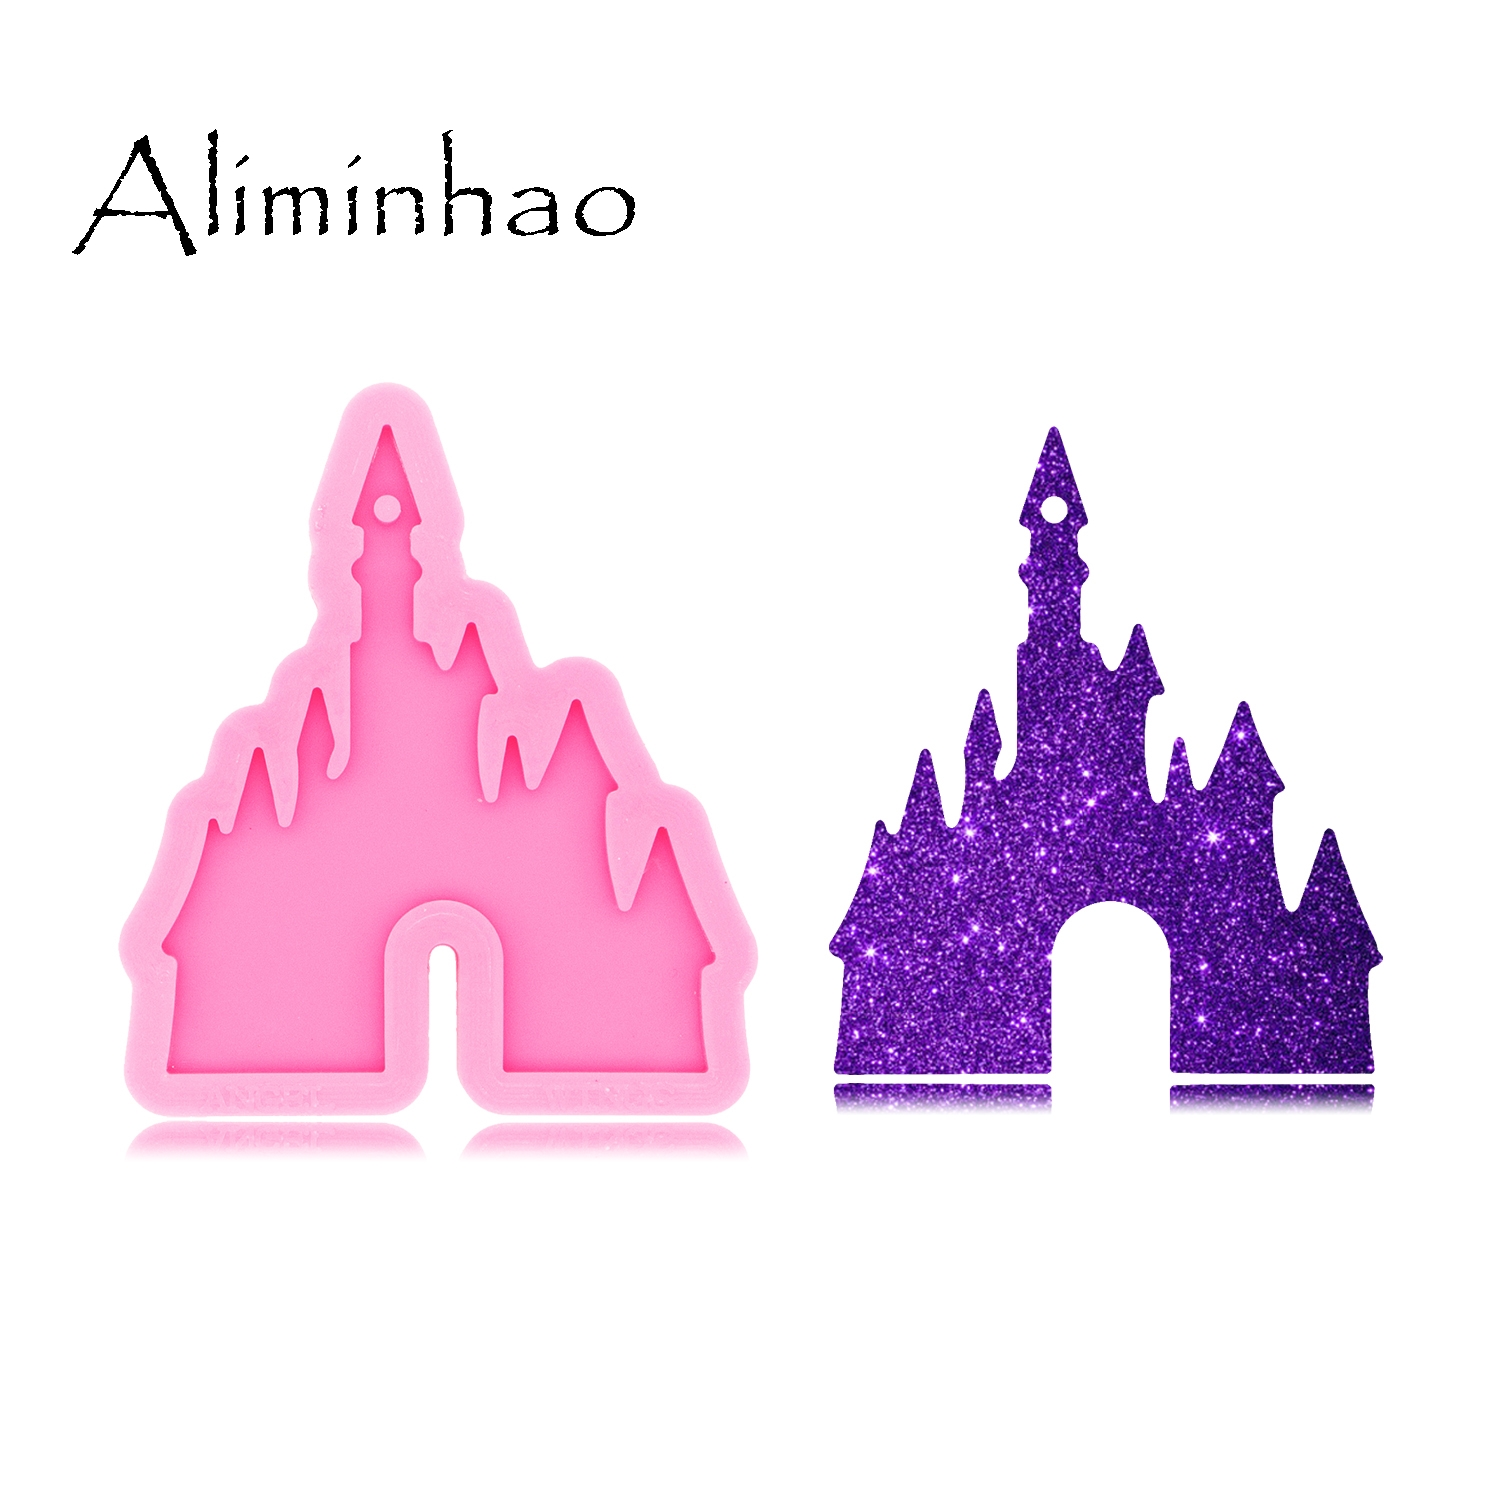 DY0479 Shiny Glossy Castle Mould Silicone For Epoxy Resin Jewellery Making Keychain Mold